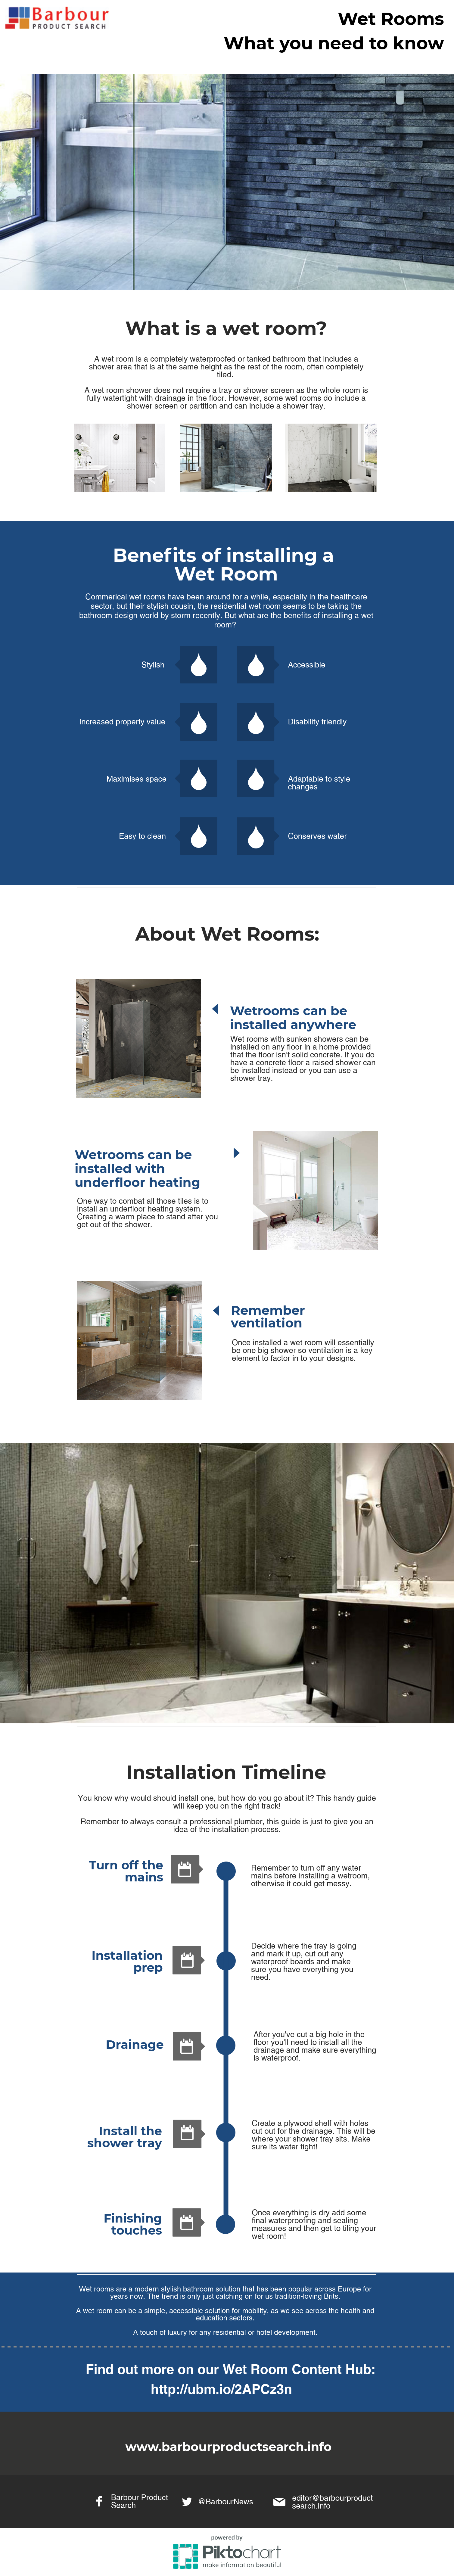 Wetroom Infographic Barbour Product Search